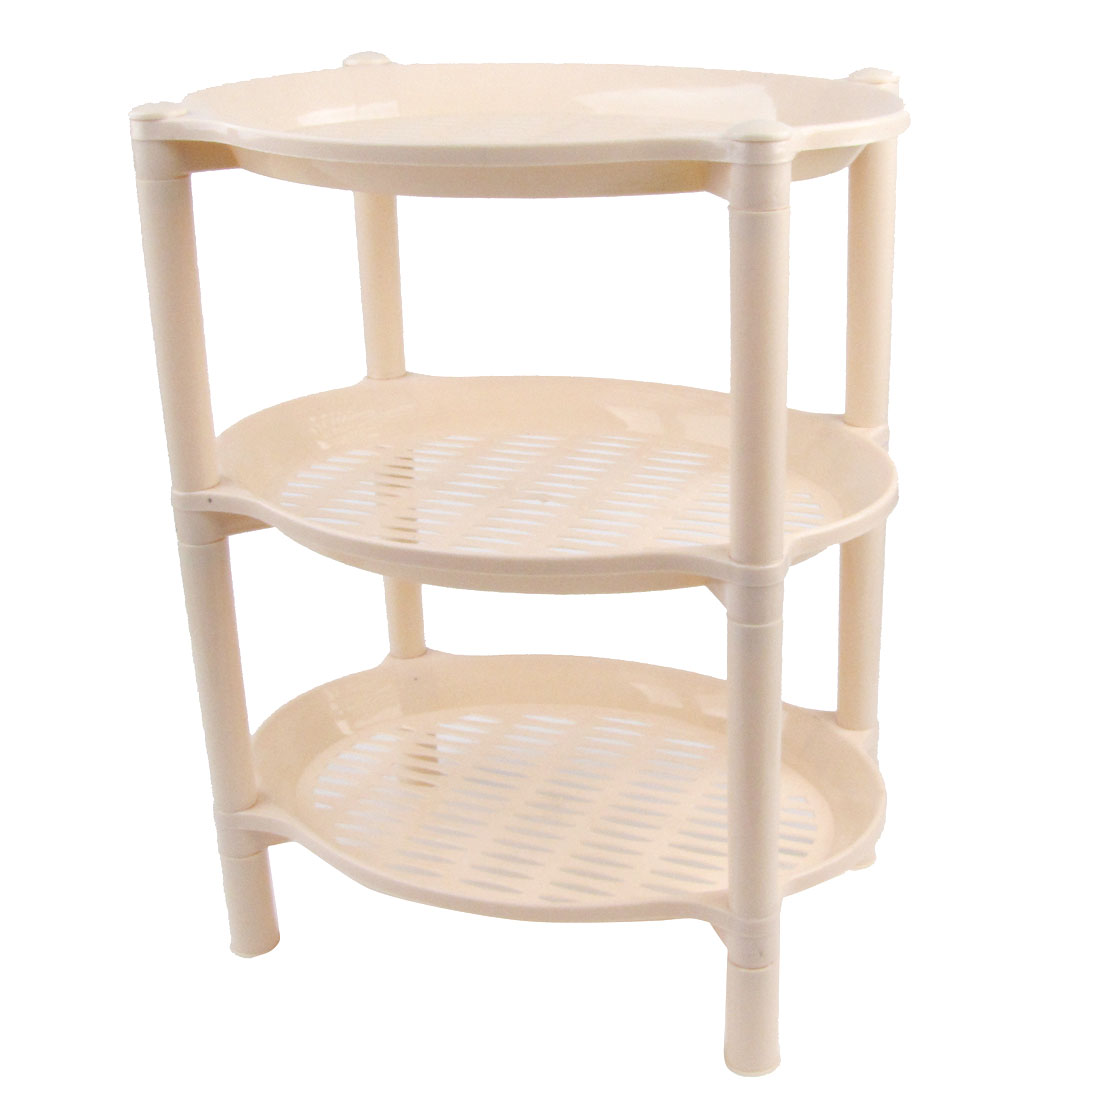 Household Ellipse Detachable Three Layer Pale Pink Plastic Shelves Storage Rack